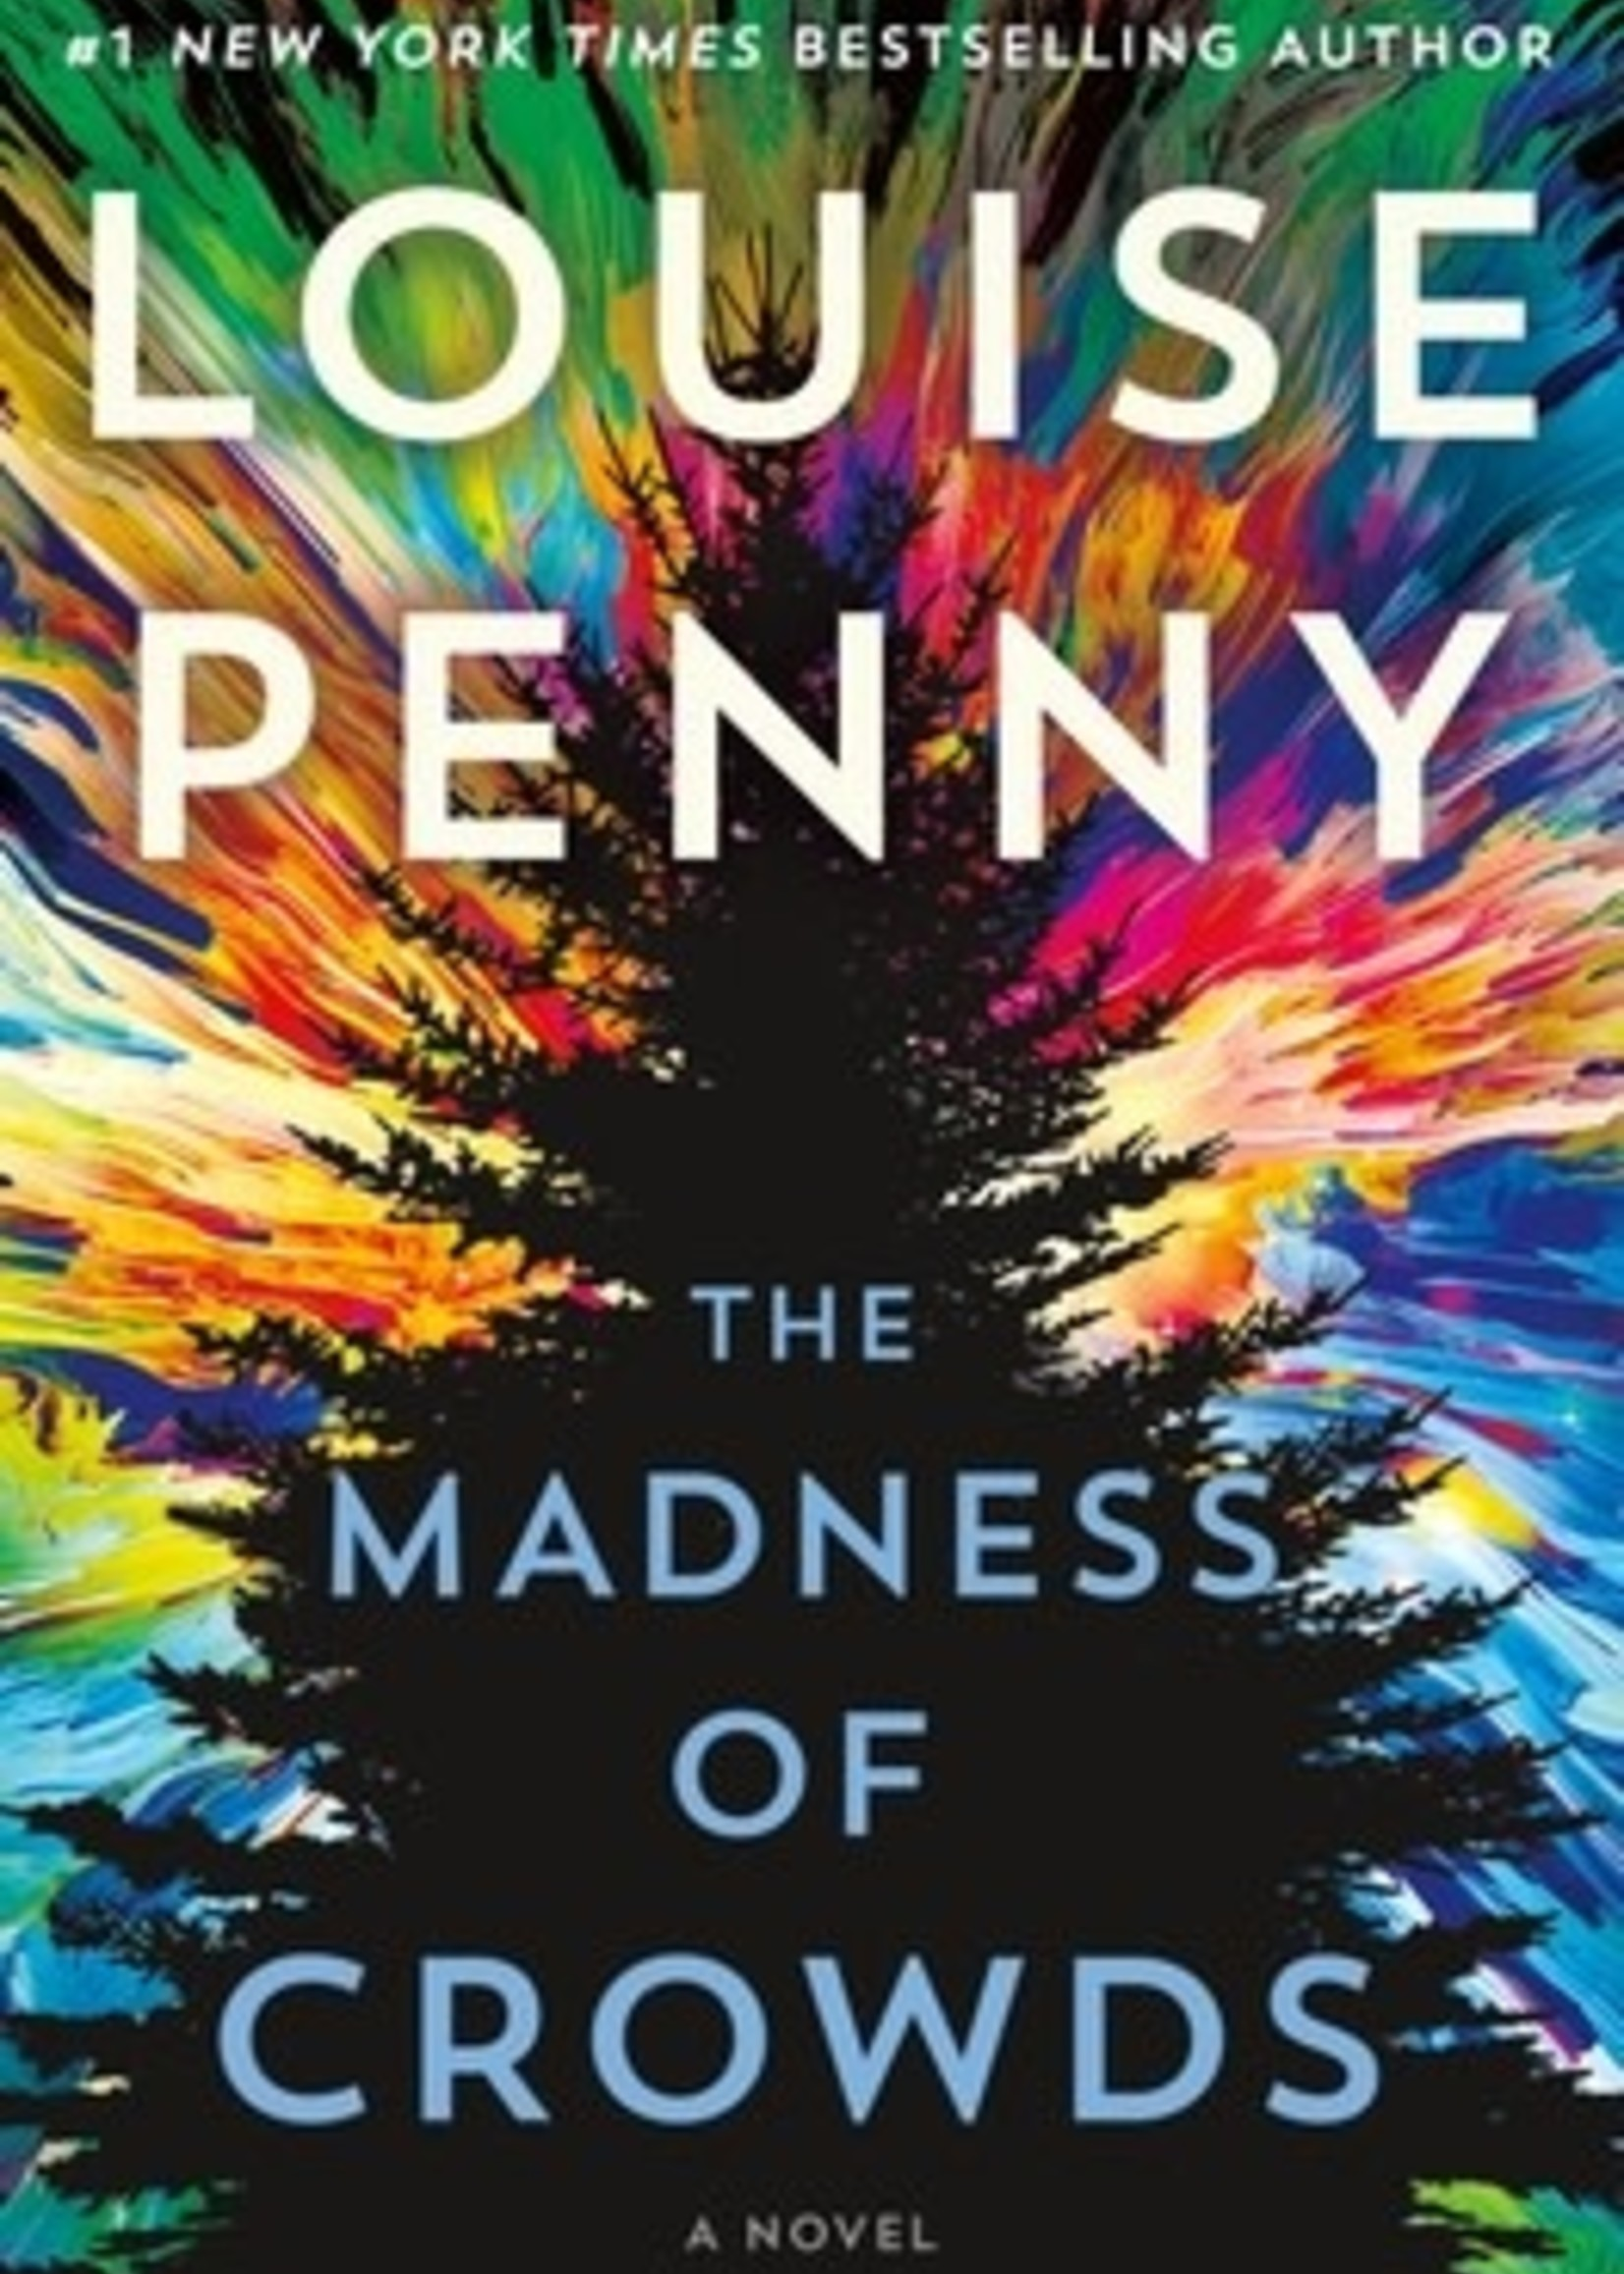 The Madness of Crowds (Chief Inspector Armand Gamache #17) by Louise Penny